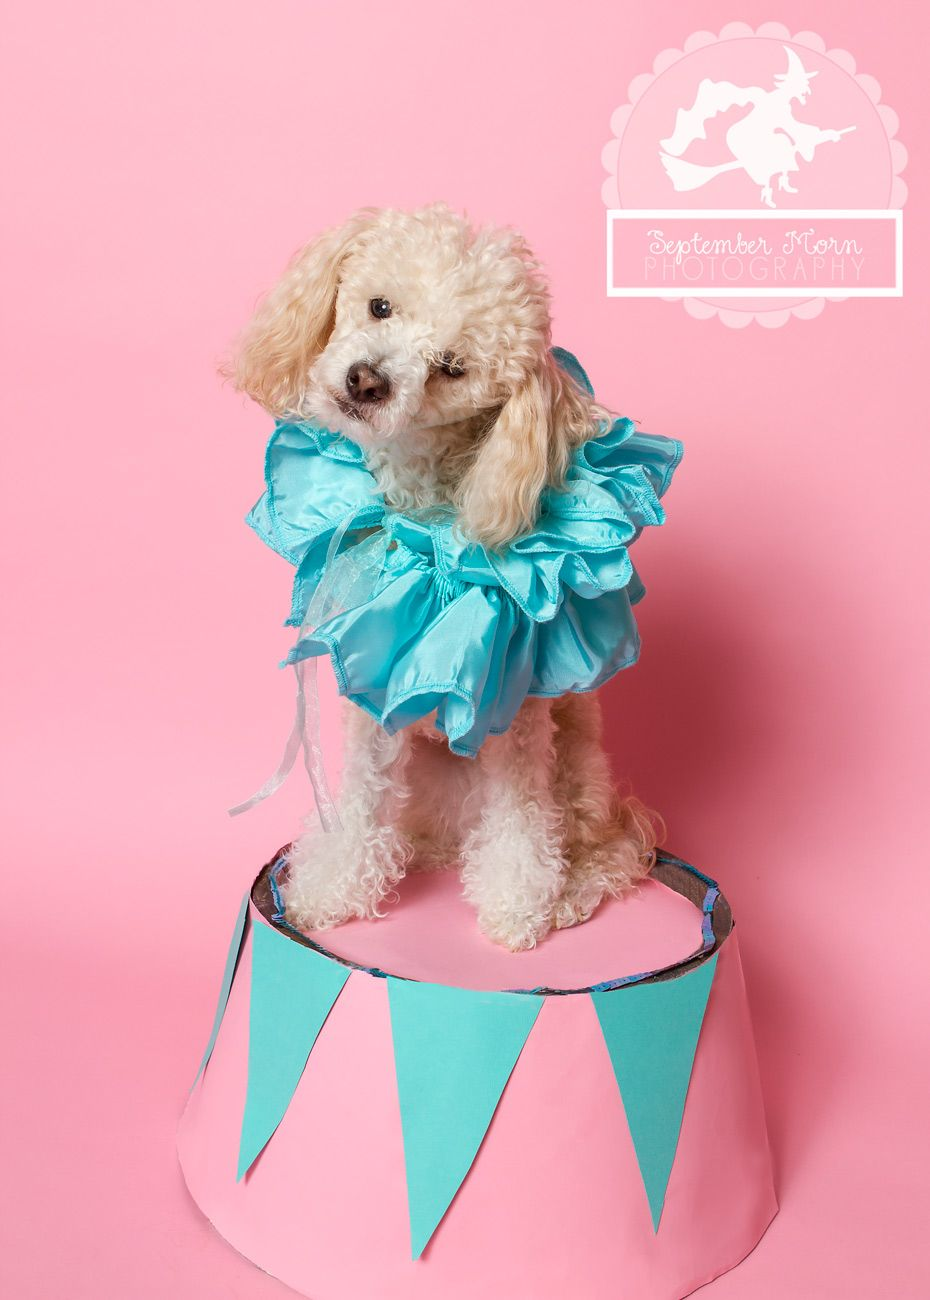 circus-dog-costume | Poodles | Pinterest | Dog, Poodle and Pet costumes